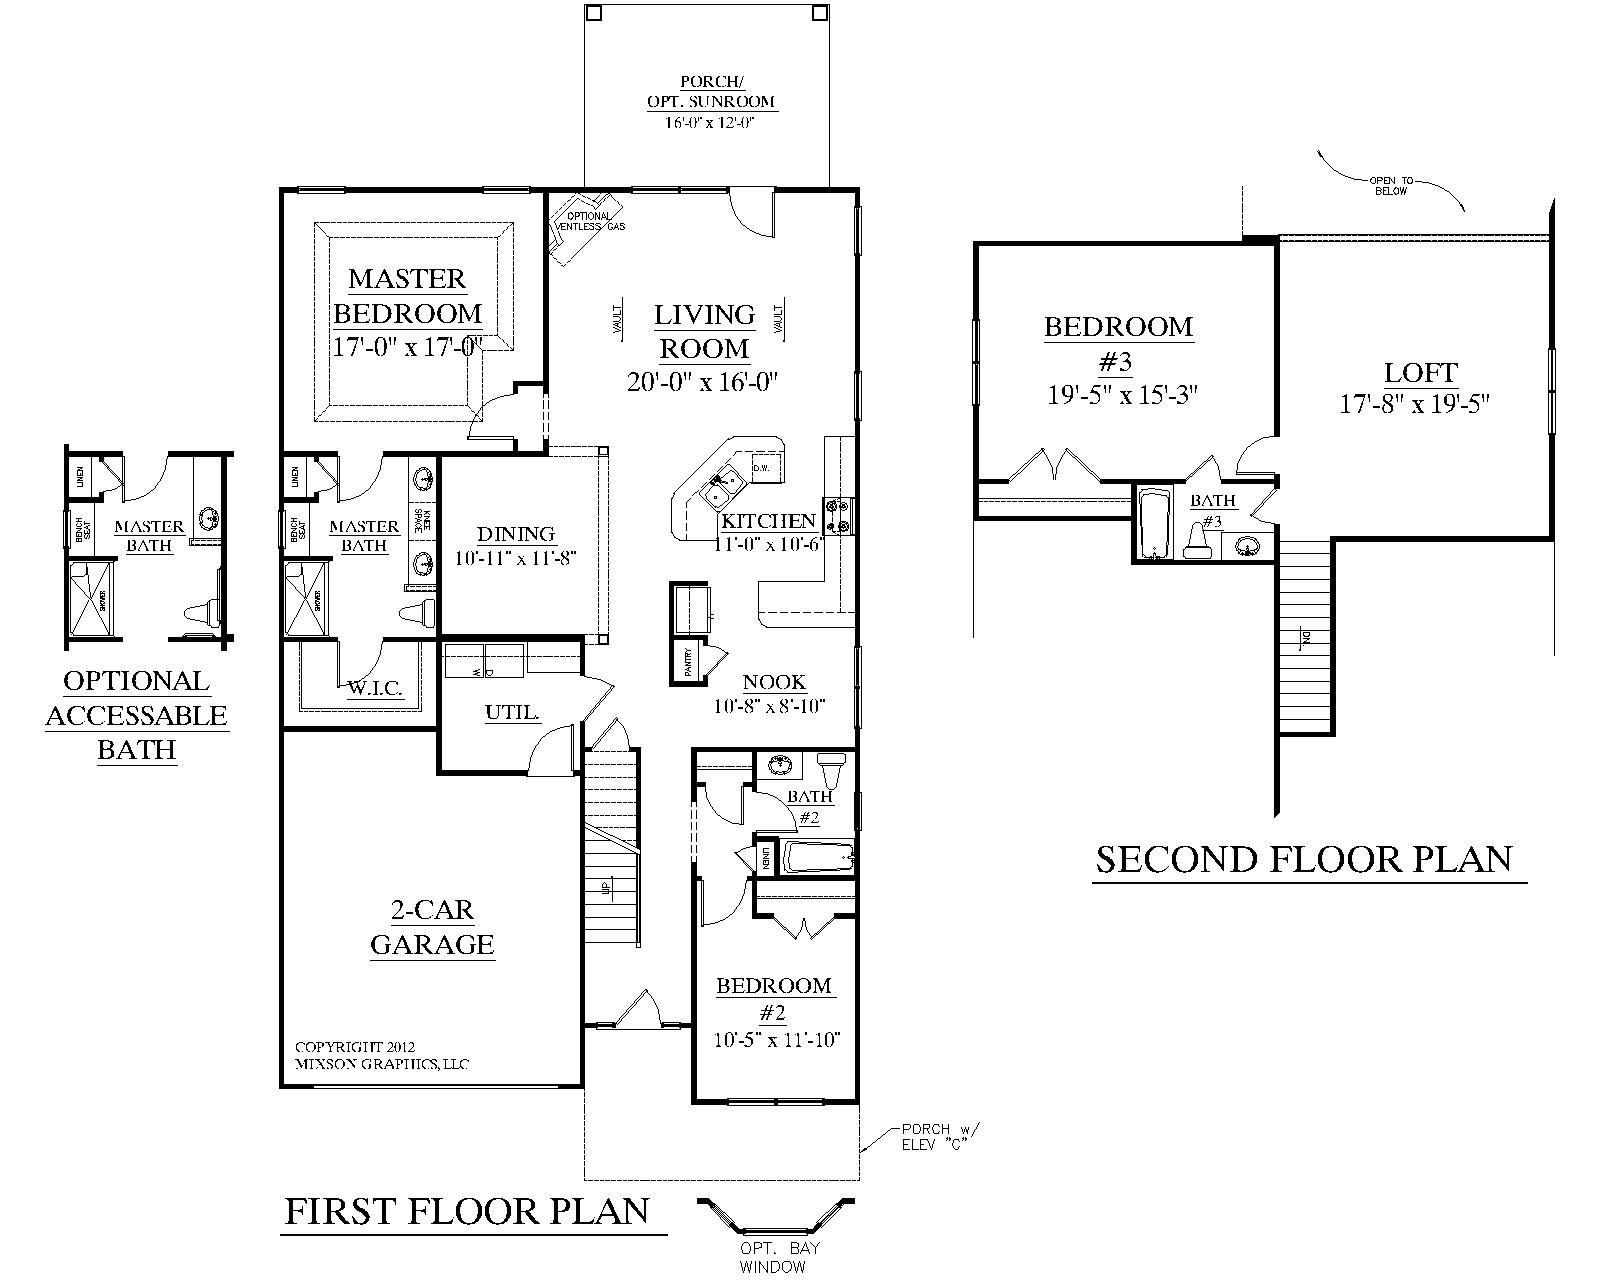 2 Story House Floor Plans With Basement 1 1 2 story floor plans | home design inspirations